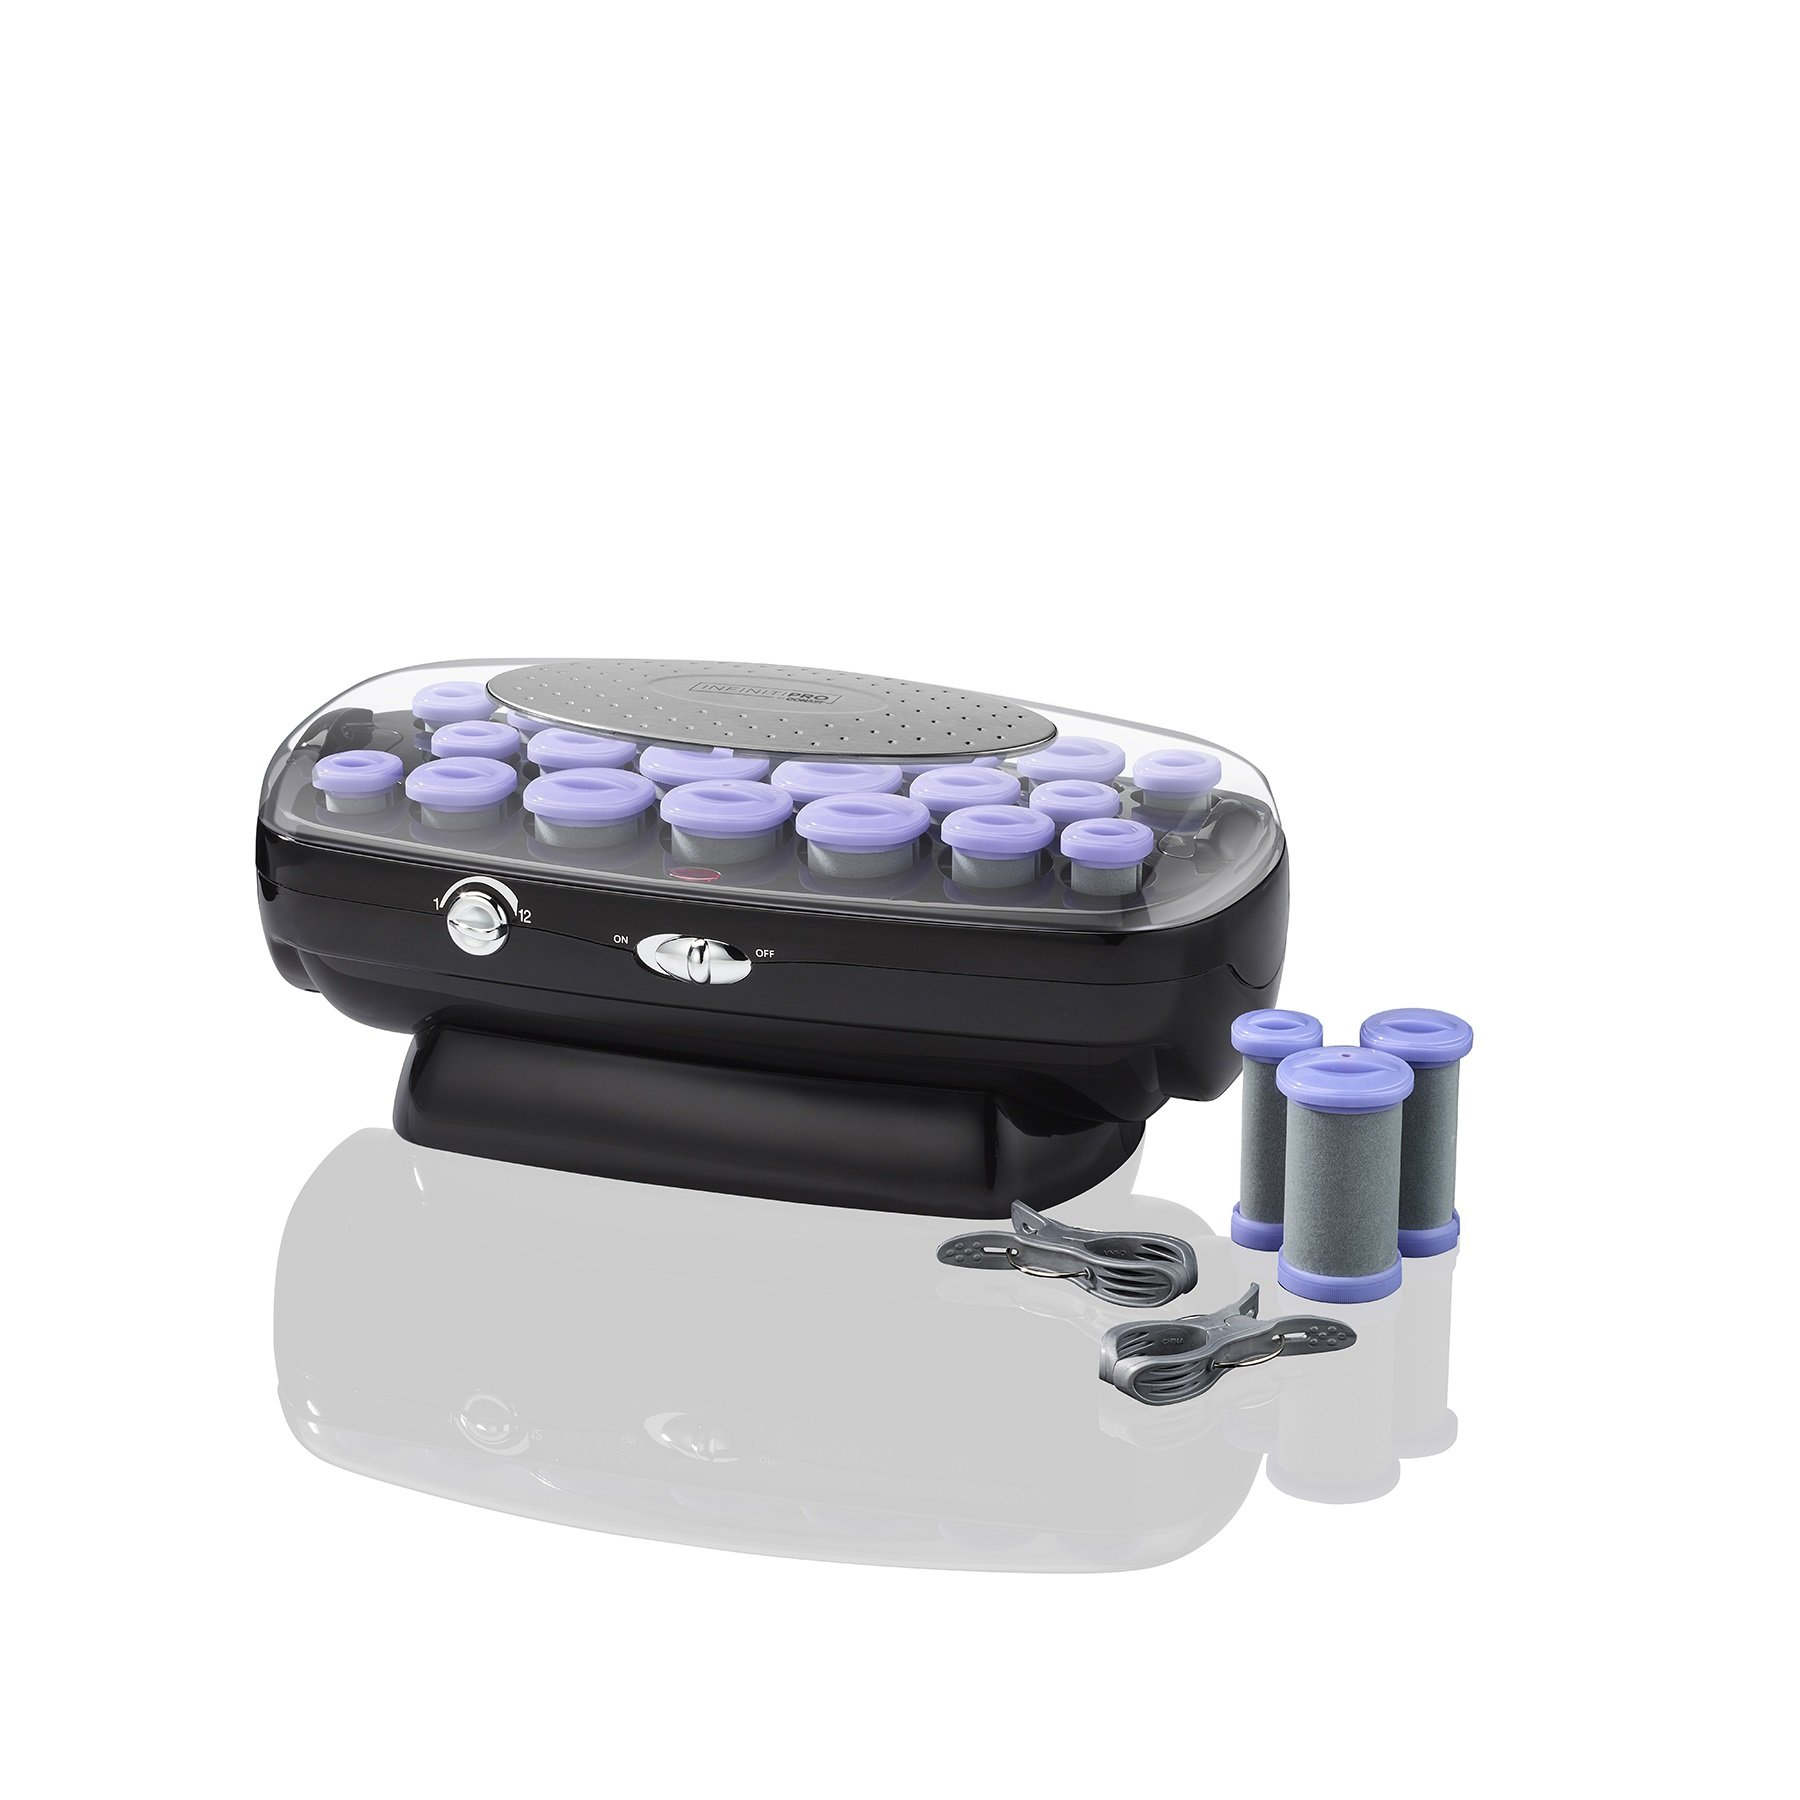 INFINITIPRO BY CONAIR Ceramic Flocked Hot Rollers w/Cord Reel; 20 Hair Rollers in 3 Sizes